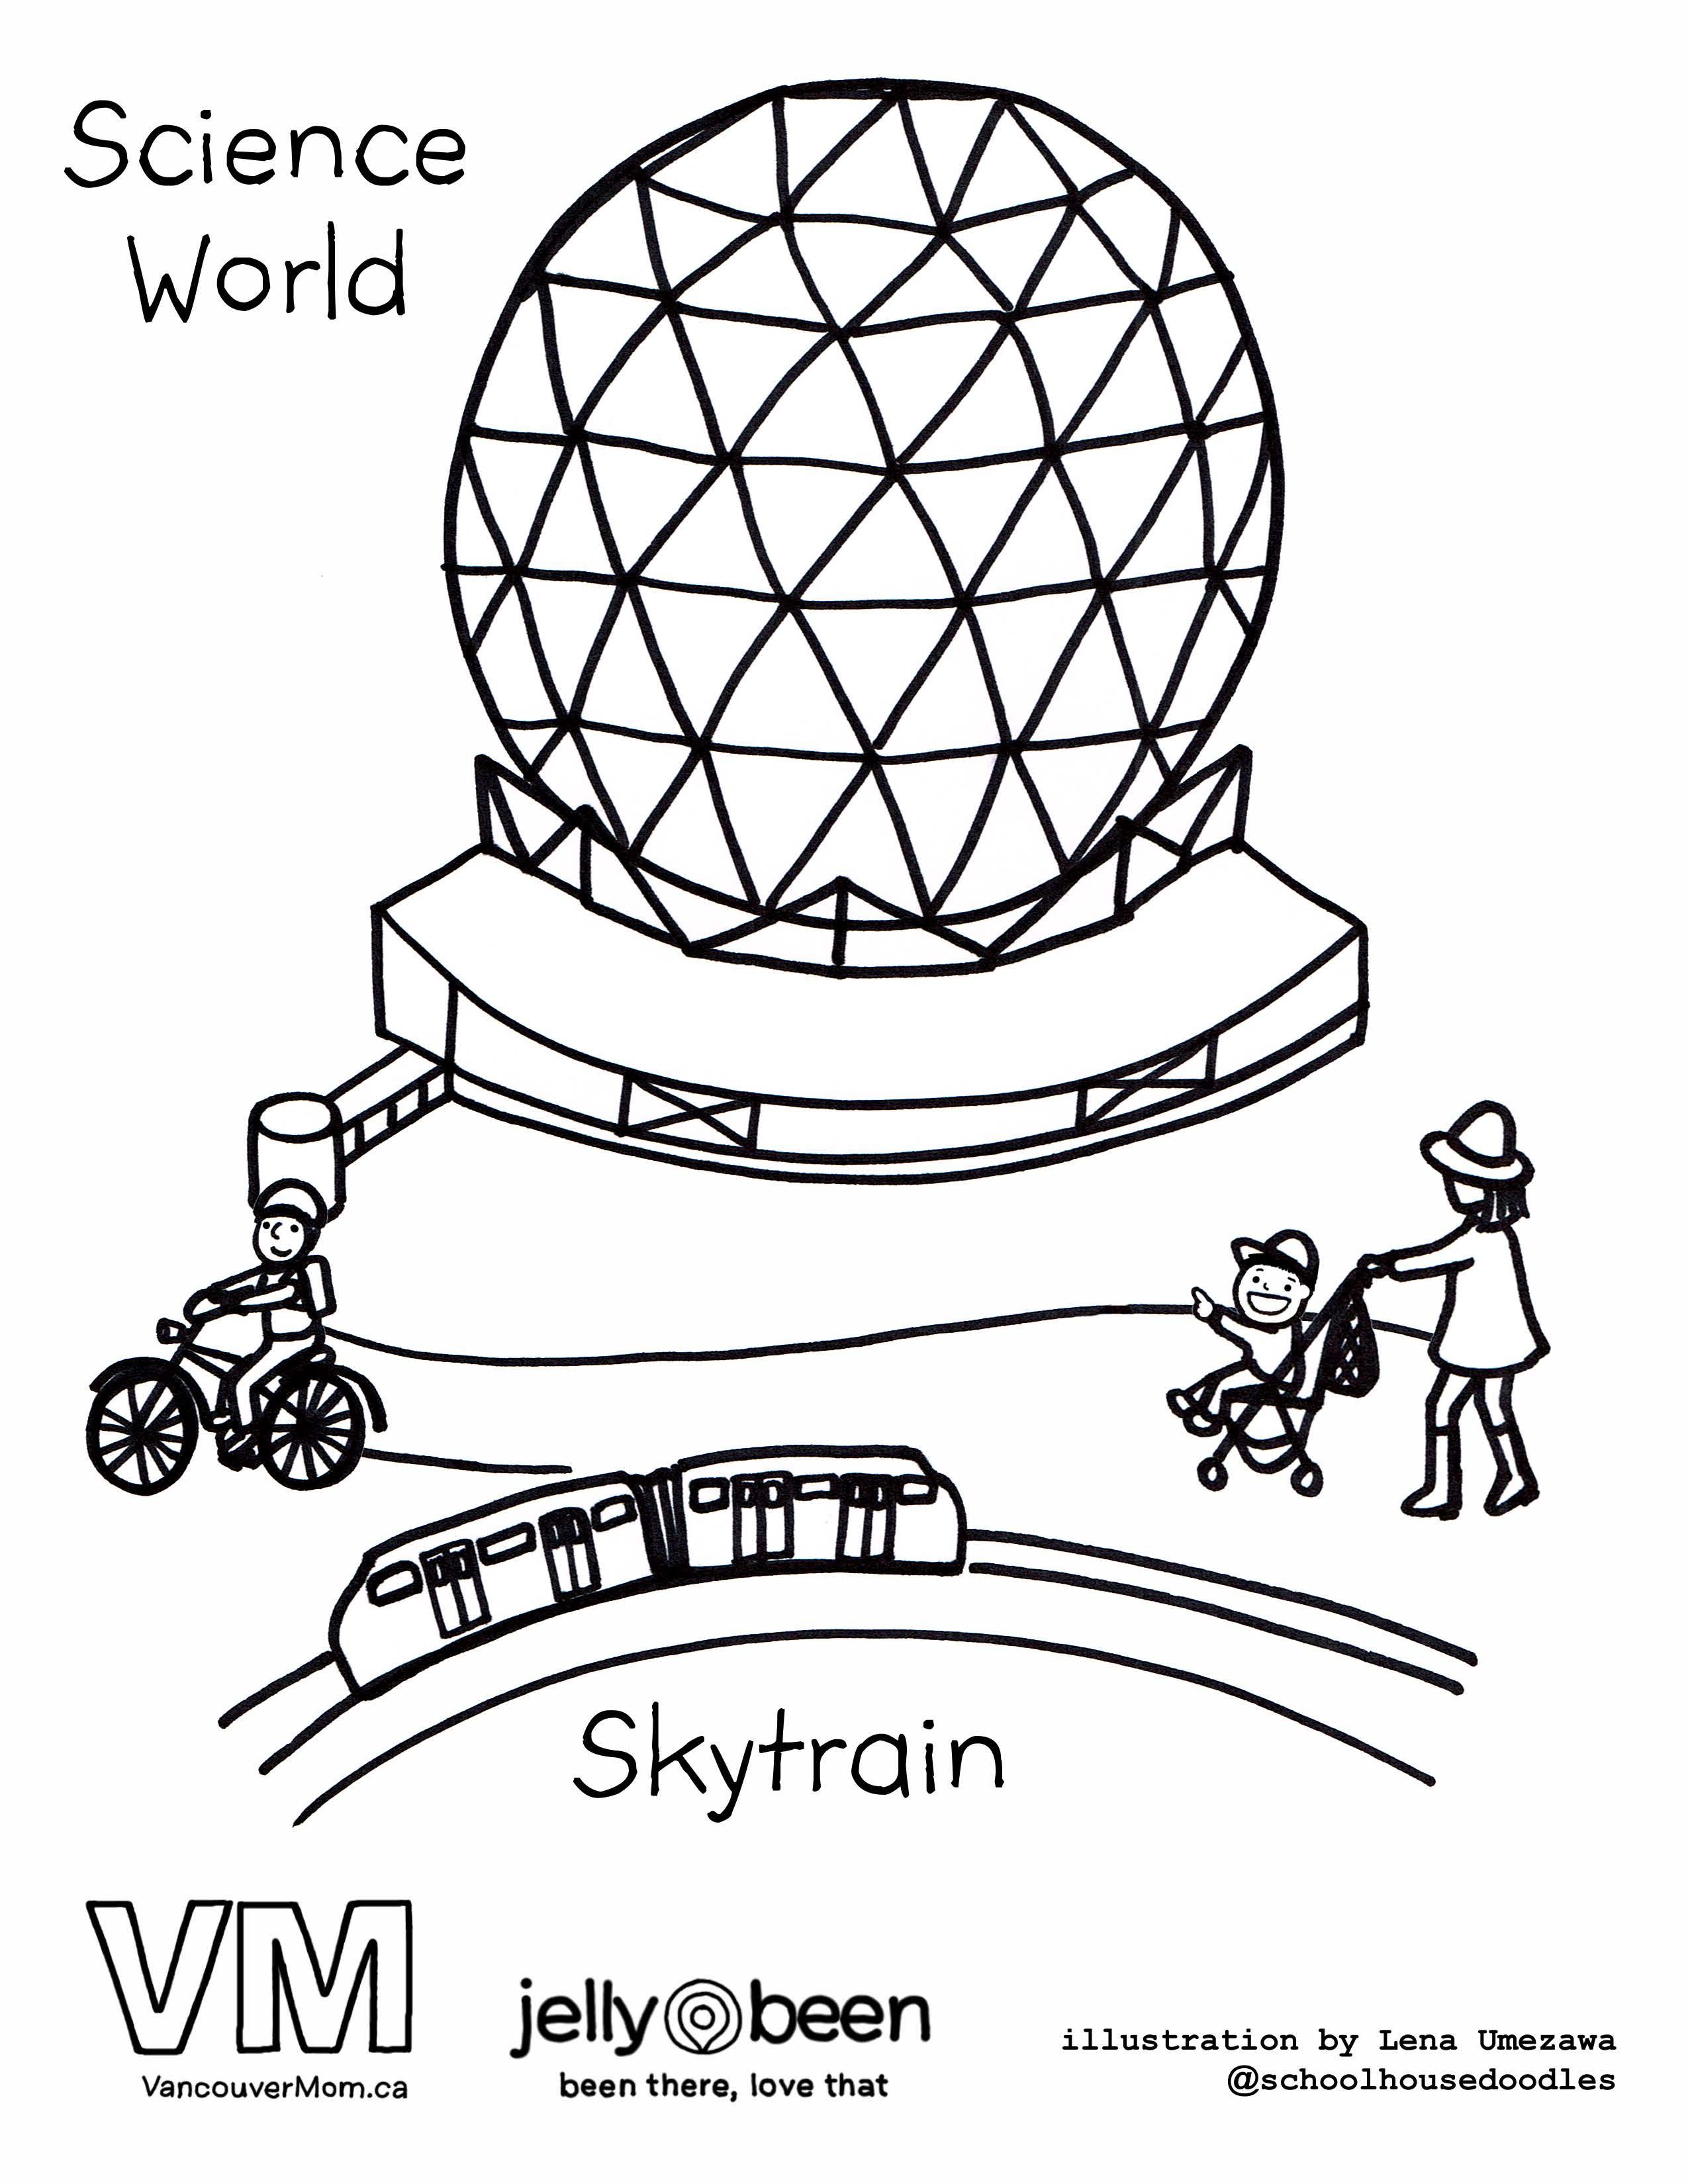 science world vancouver colouring pages kids stuff we love